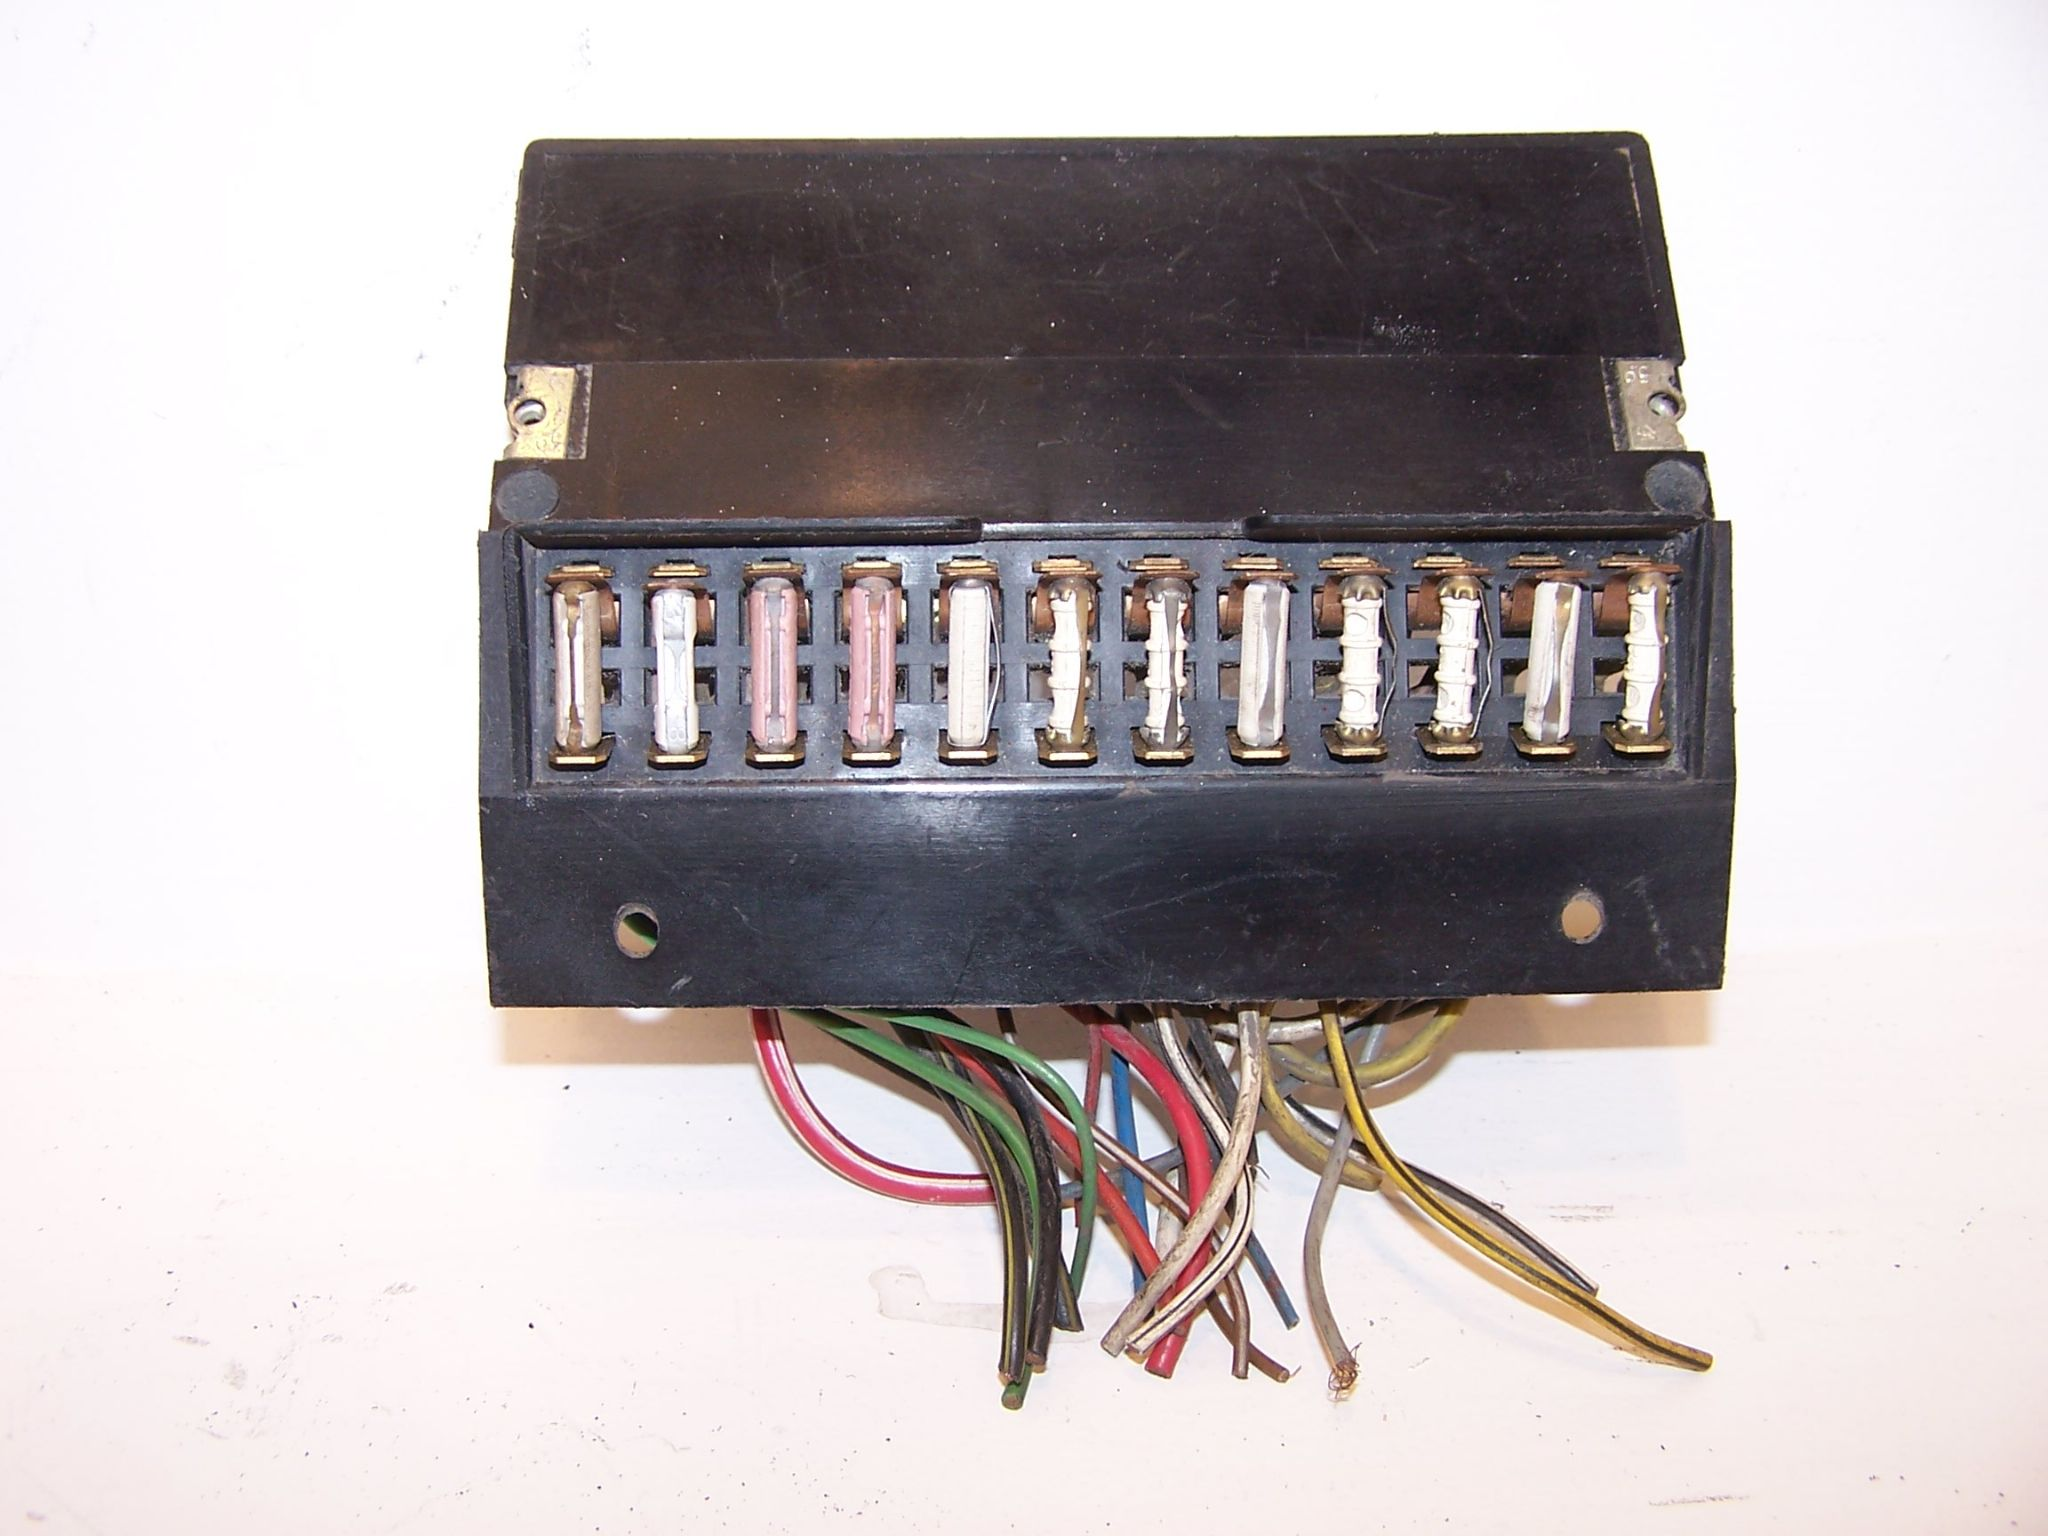 fuse box vw beetle 1303 & type 2 1974 1979 1974 volkswagen super beetle fuse box fuse box, vw beetle 1303 & type 2 1974 1979